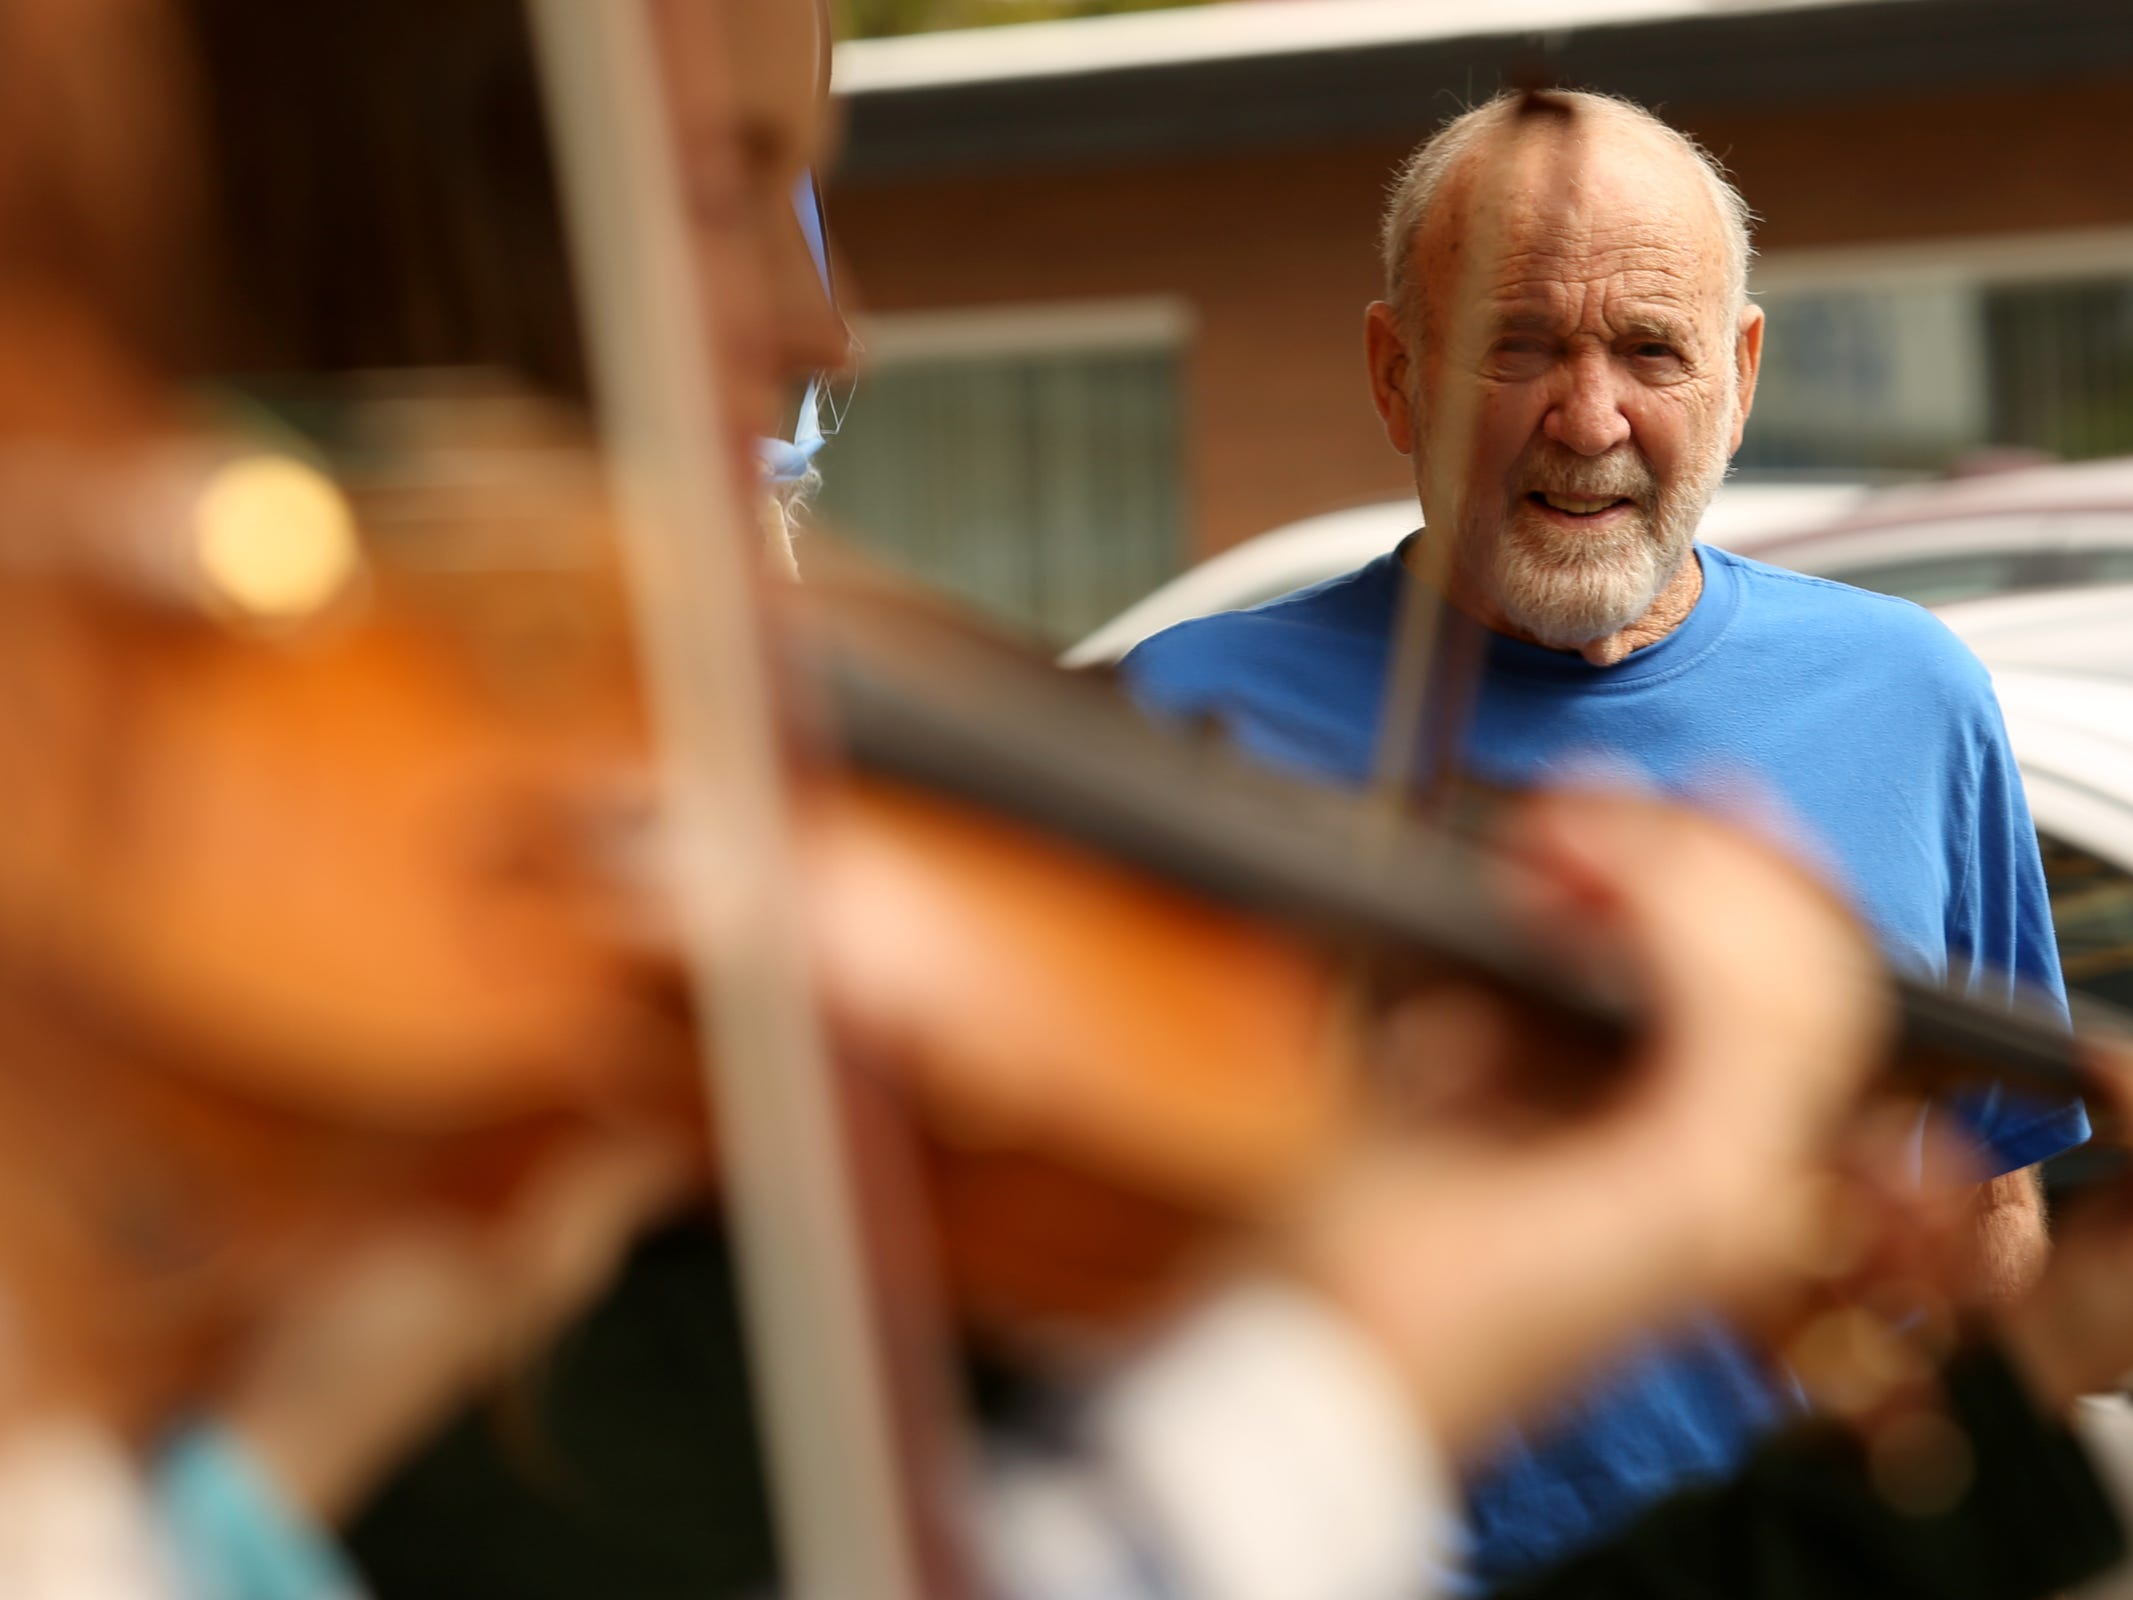 Ron Keppinger, of Silverton, watches violinists perform during the Silverton Sidewalk Shindig, a culture of music festival, in downtown Silverton on Saturday, Oct. 6, 2018.